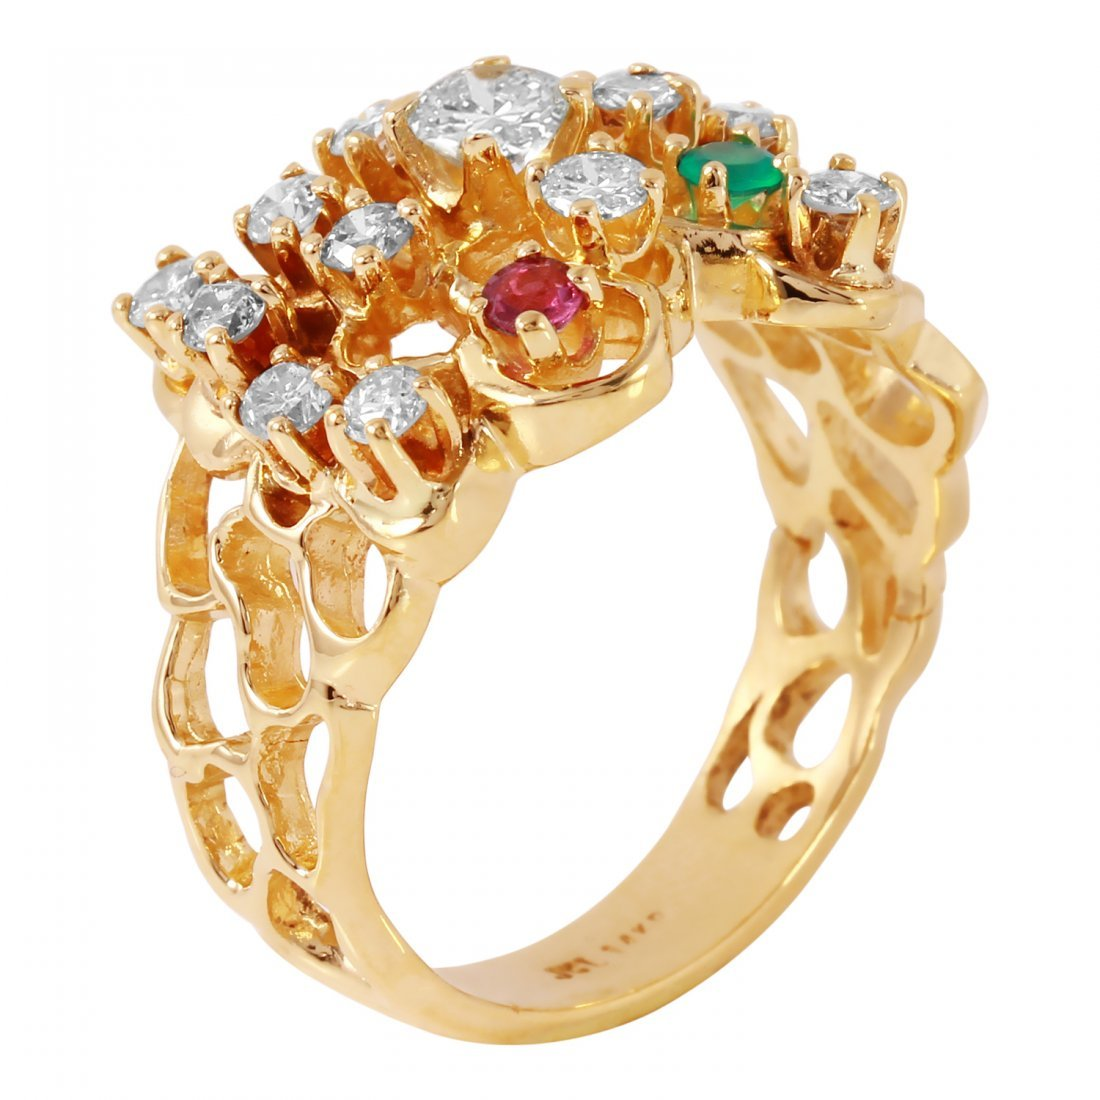 Ladies 1CTW Diamond And Multigem 14K Yellow Gold Ring - 2